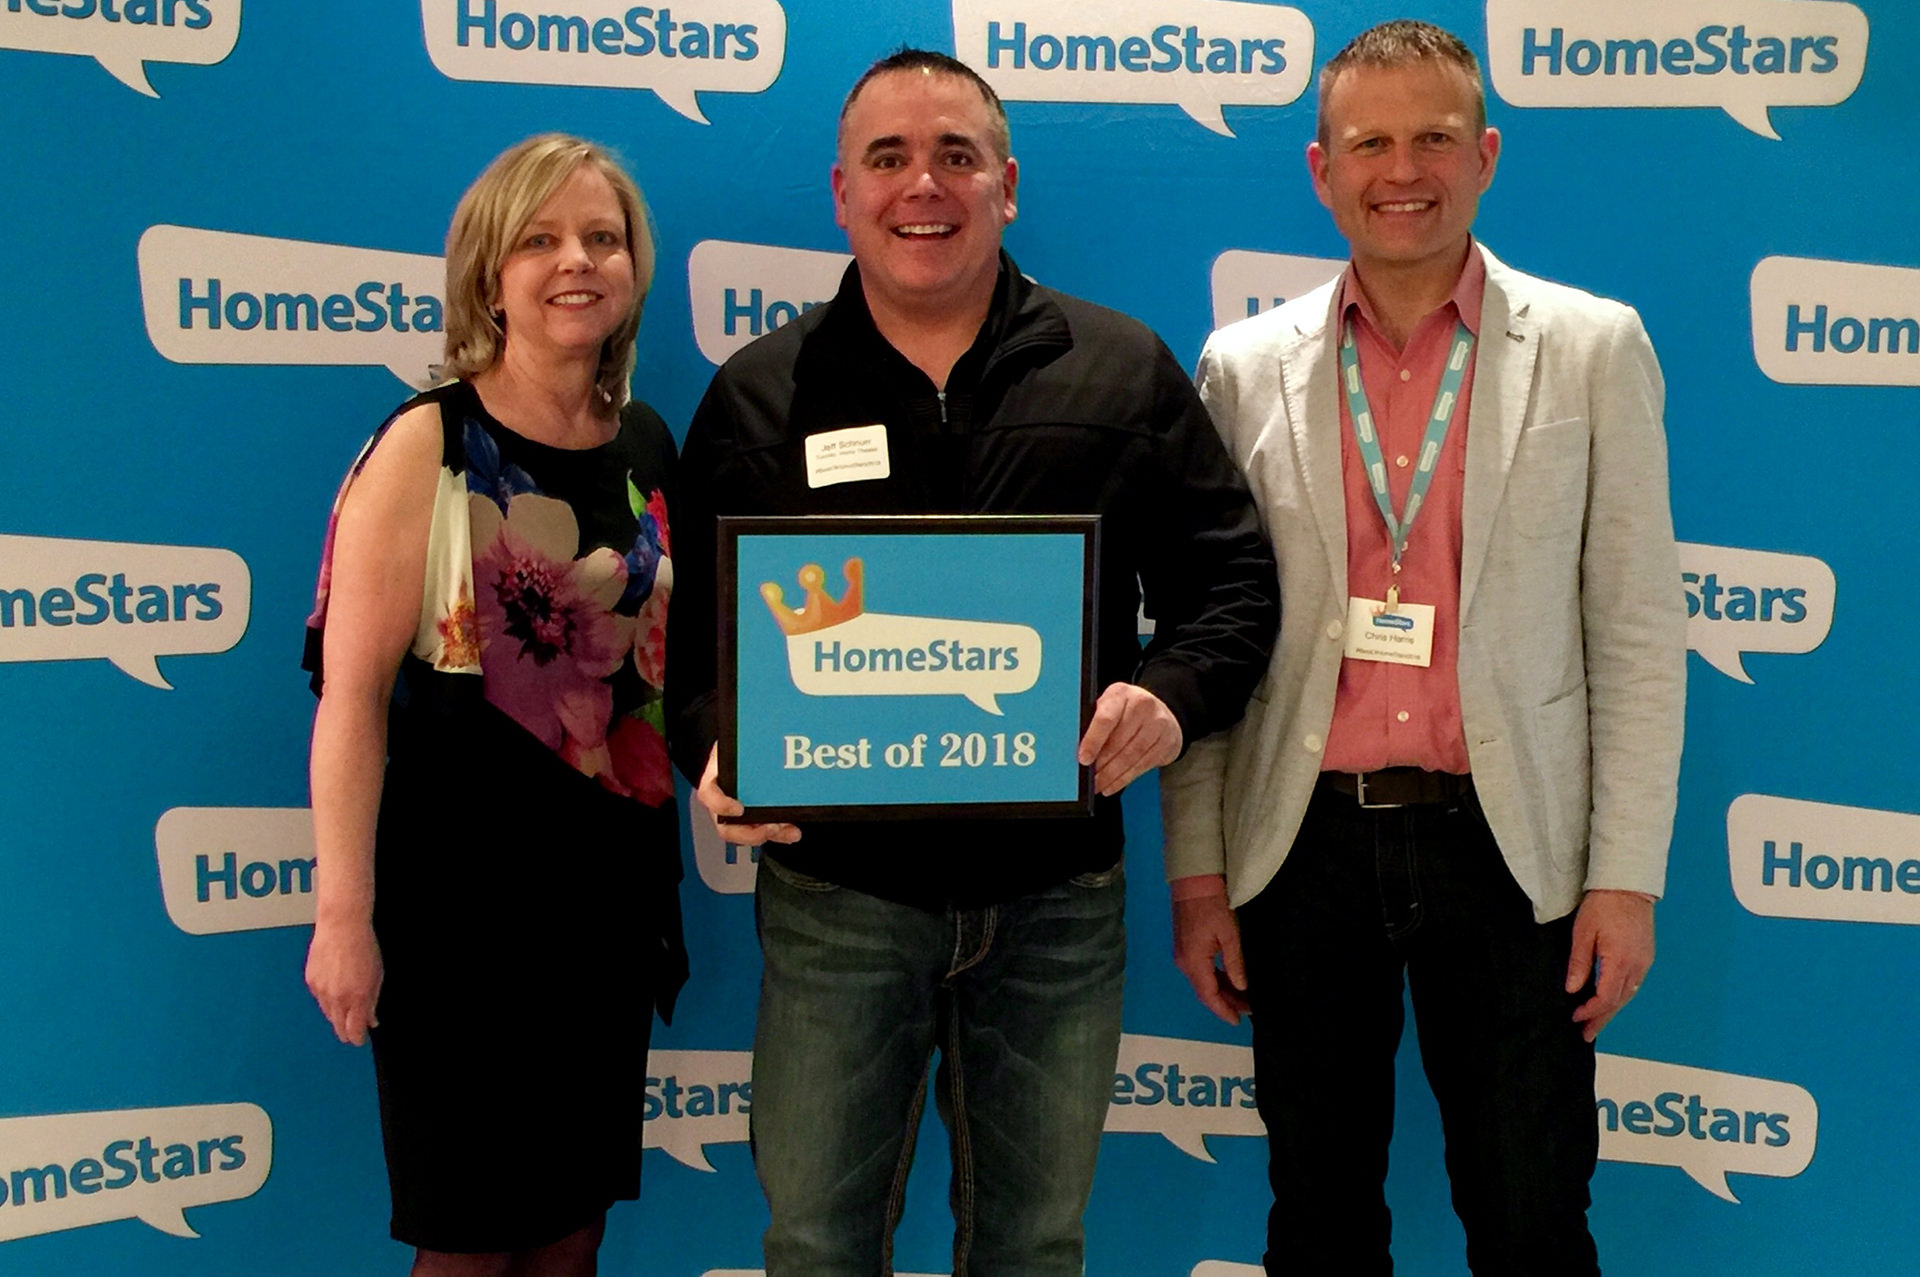 Jeff Schnurr of Toronto Home Theater Winning Homestars Award